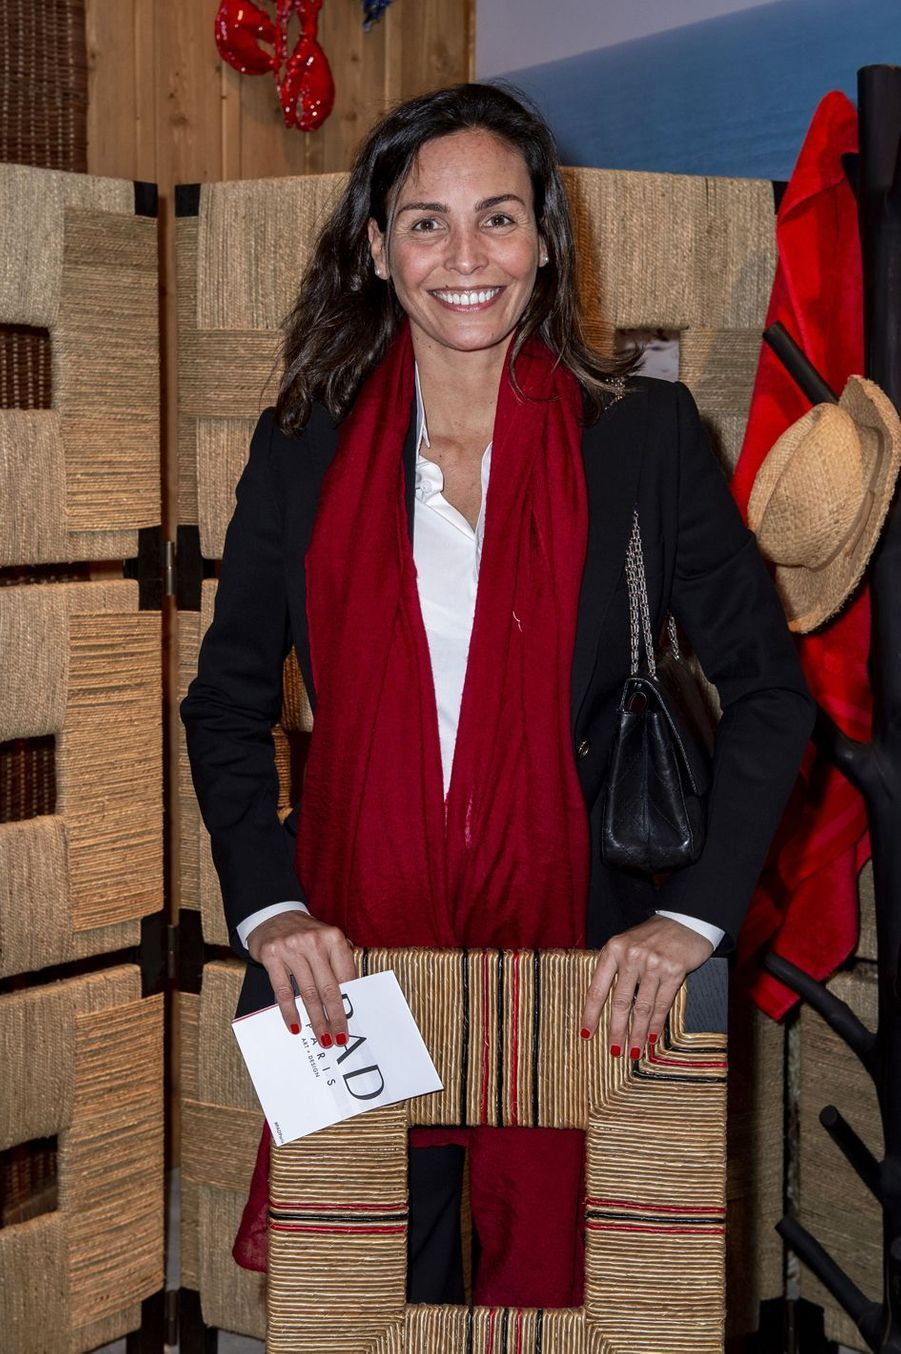 Inès Sastre lors du salon PAD (Paris Art Design) à Paris le 3 avril 2019.